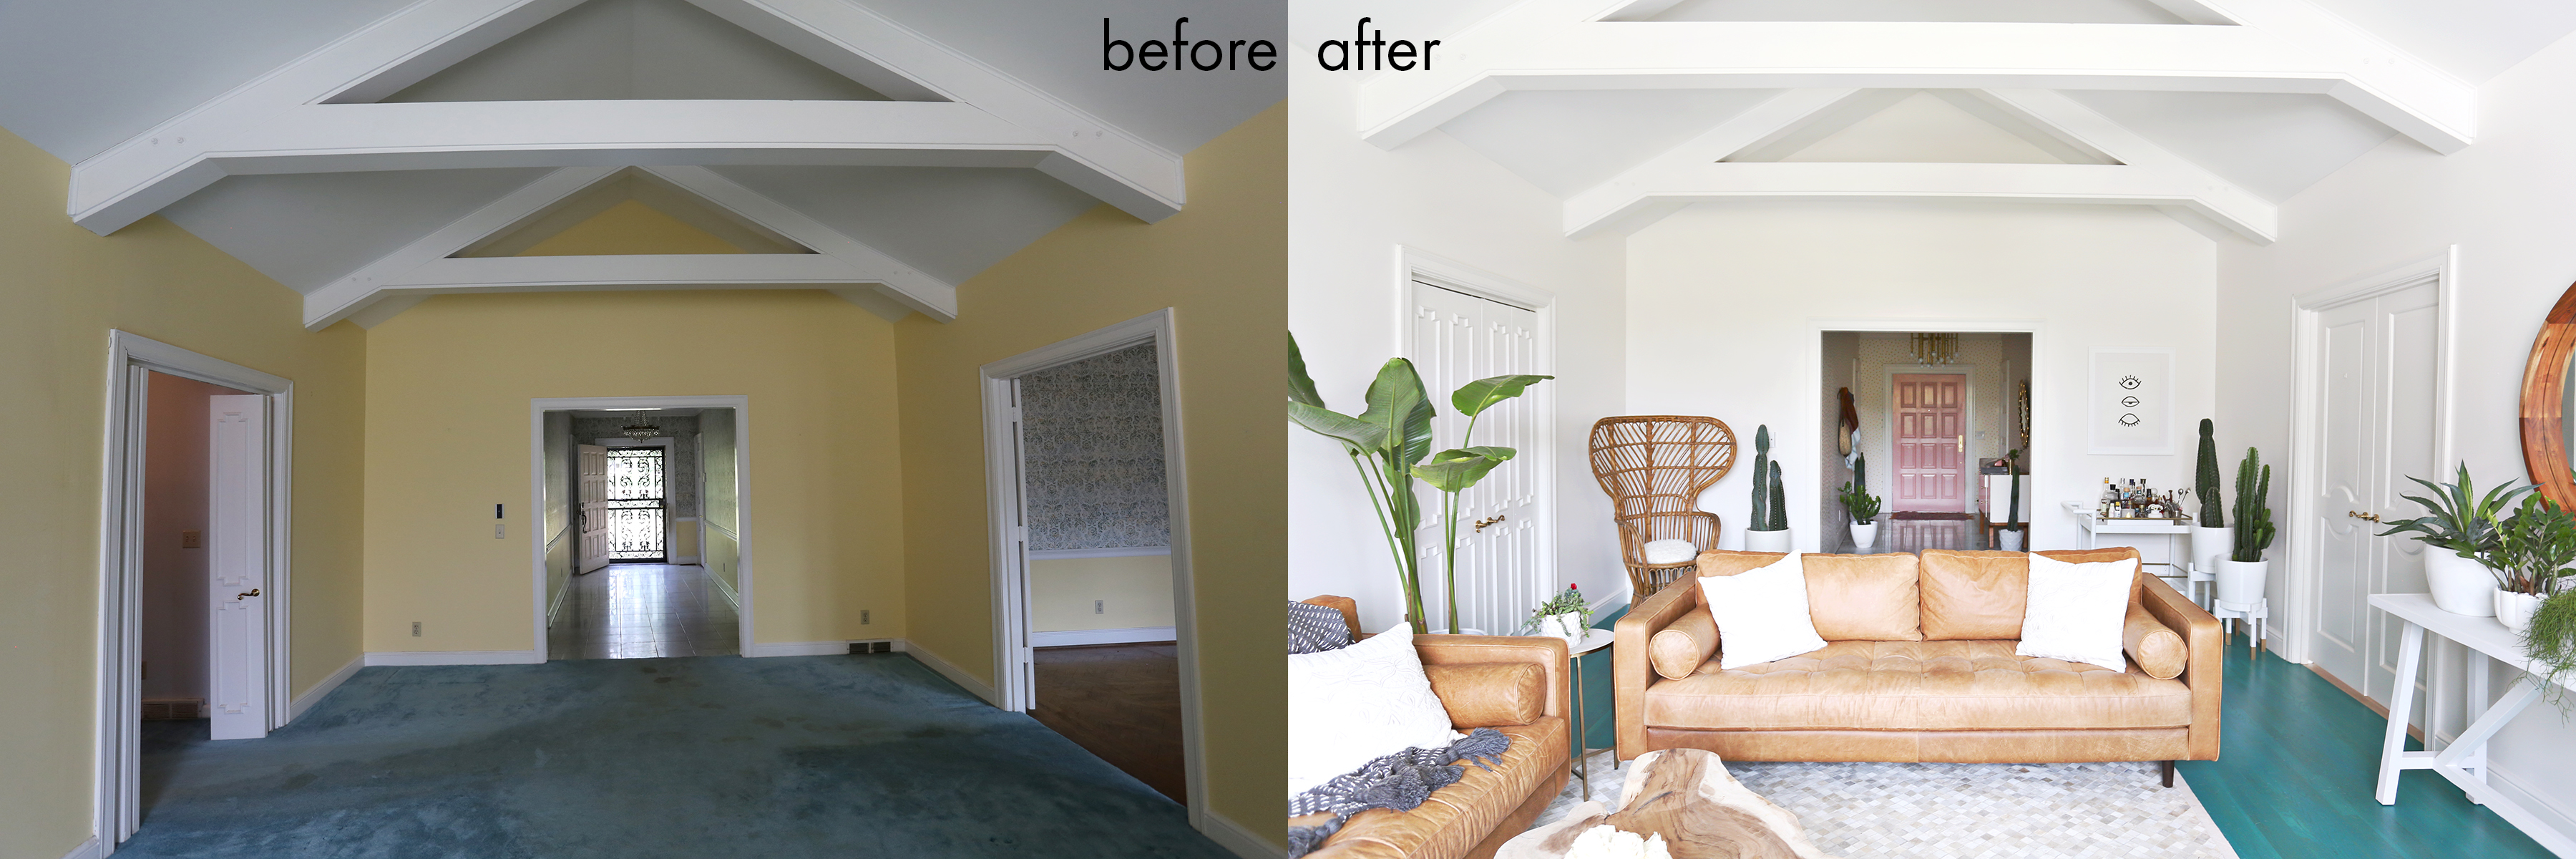 Elsies Living Room Tour Before After